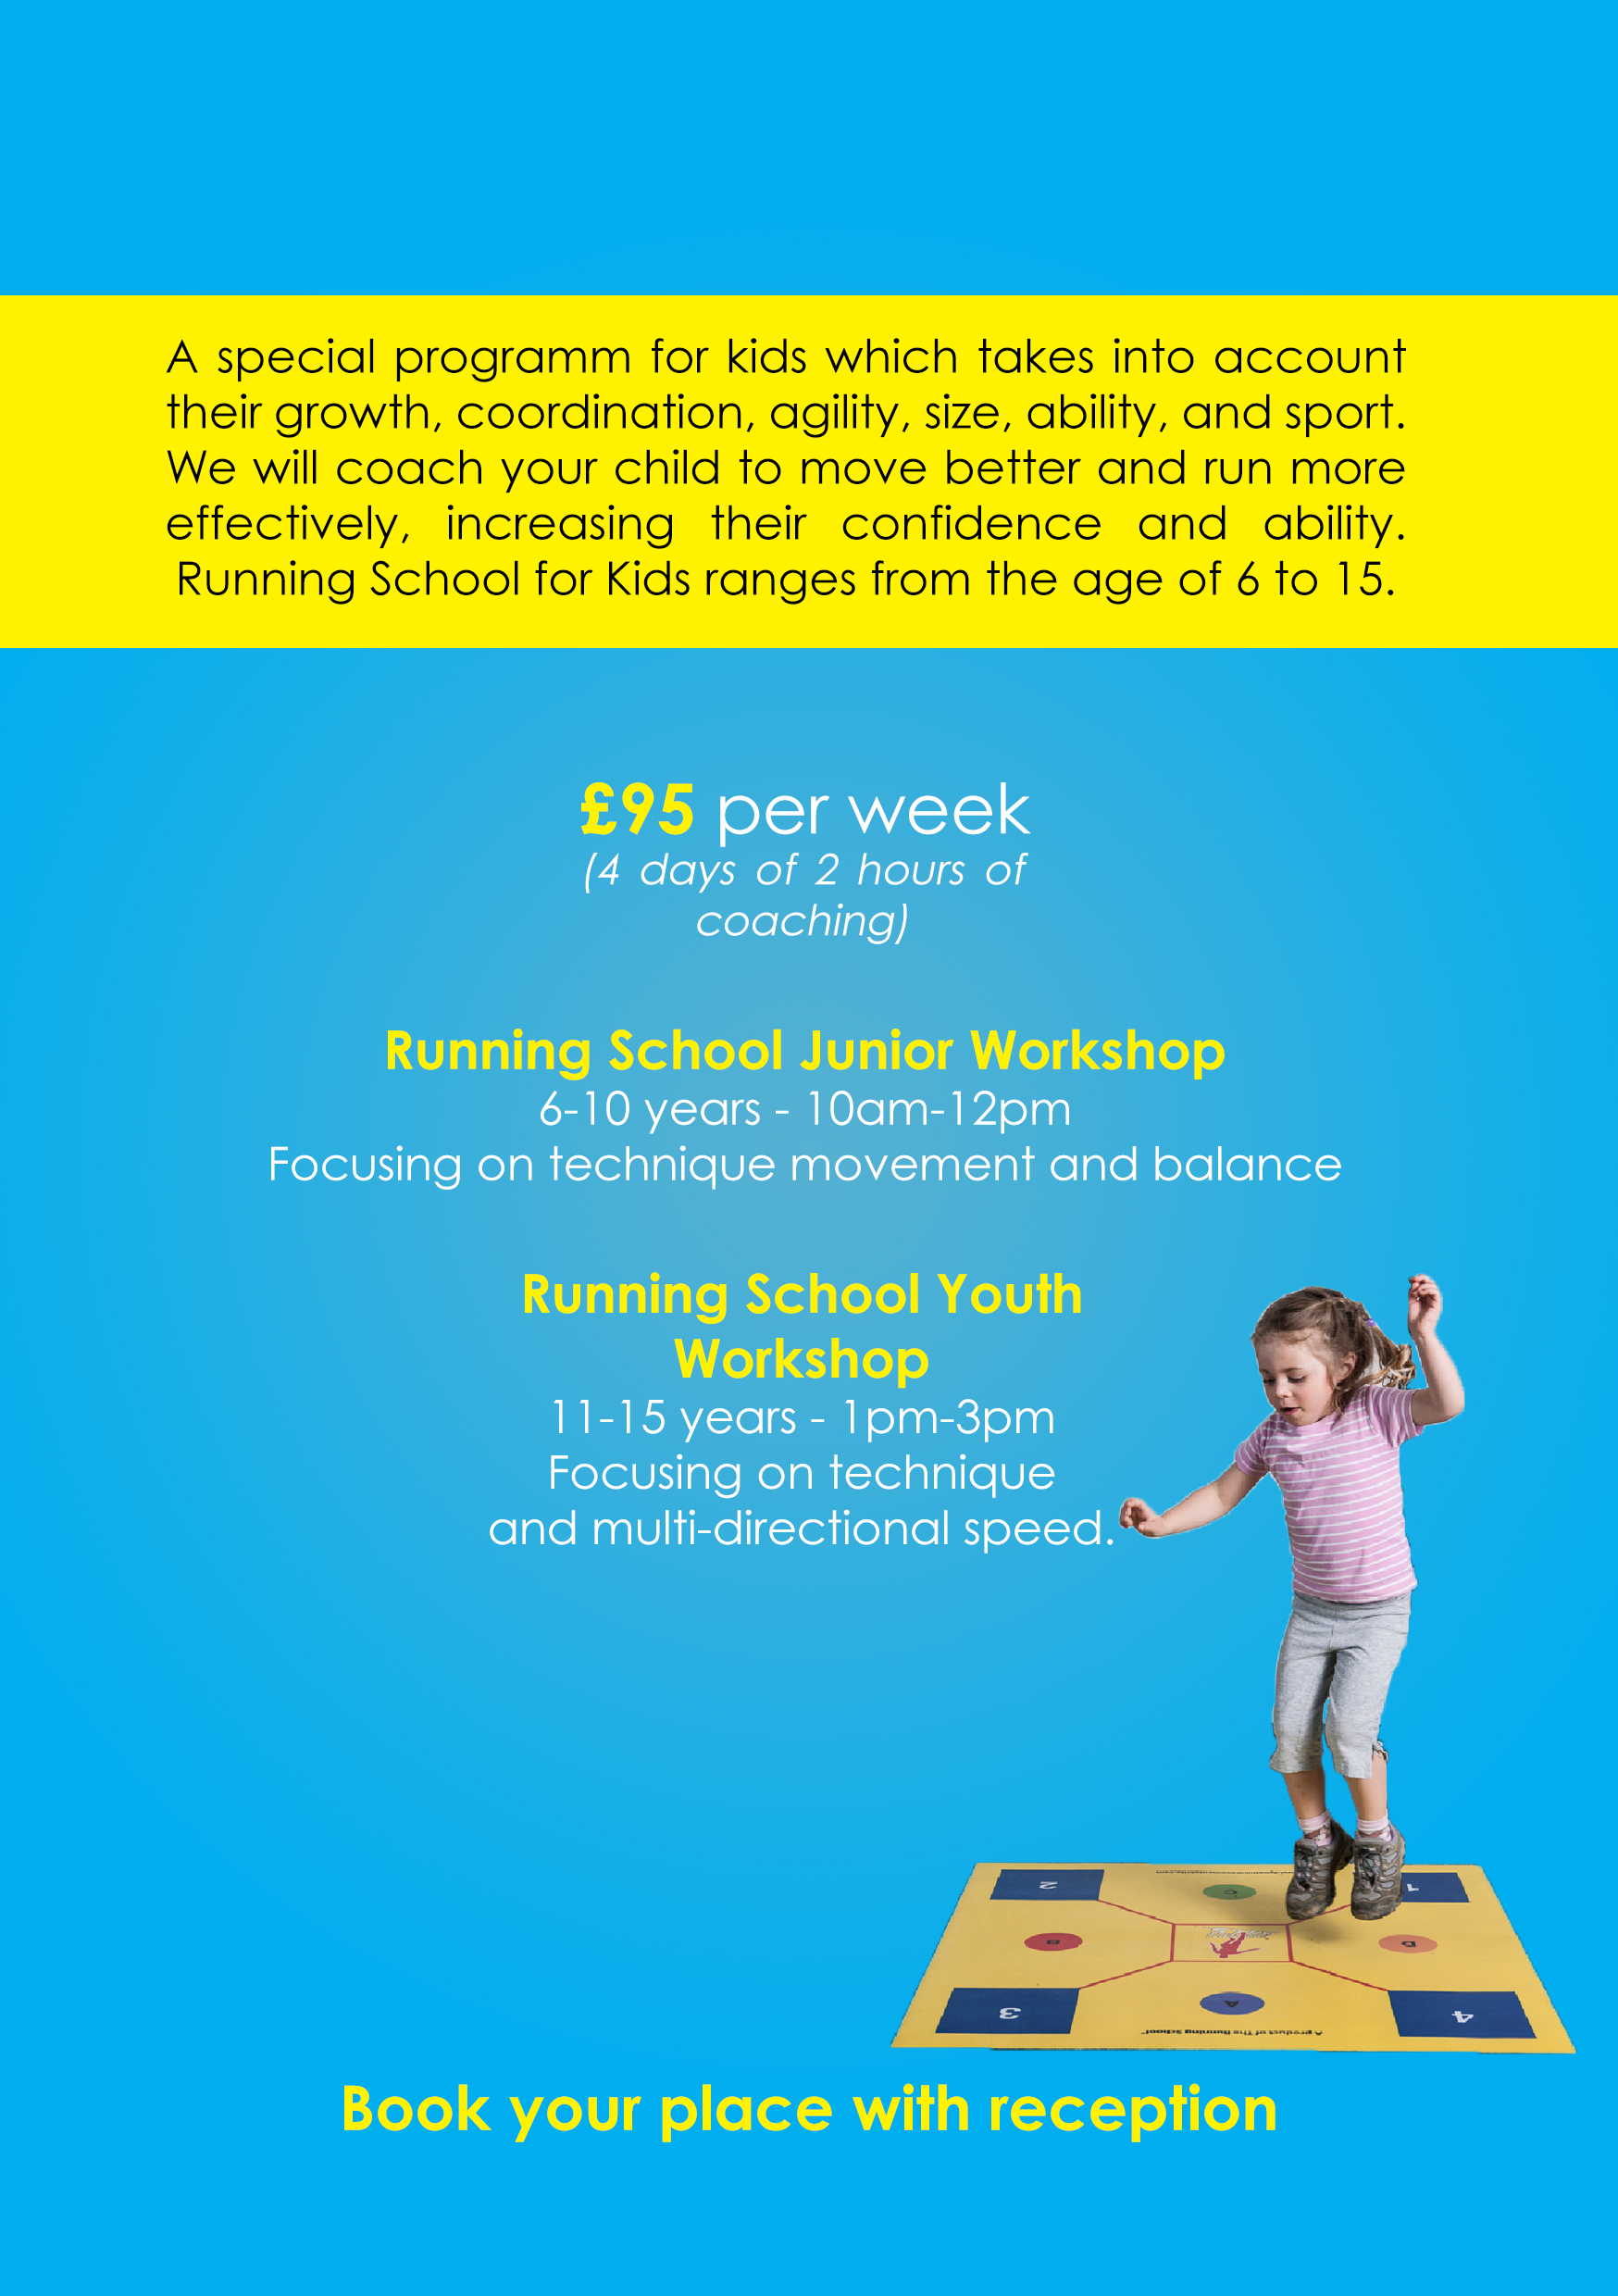 Running School Workshops for kids at The Park Club